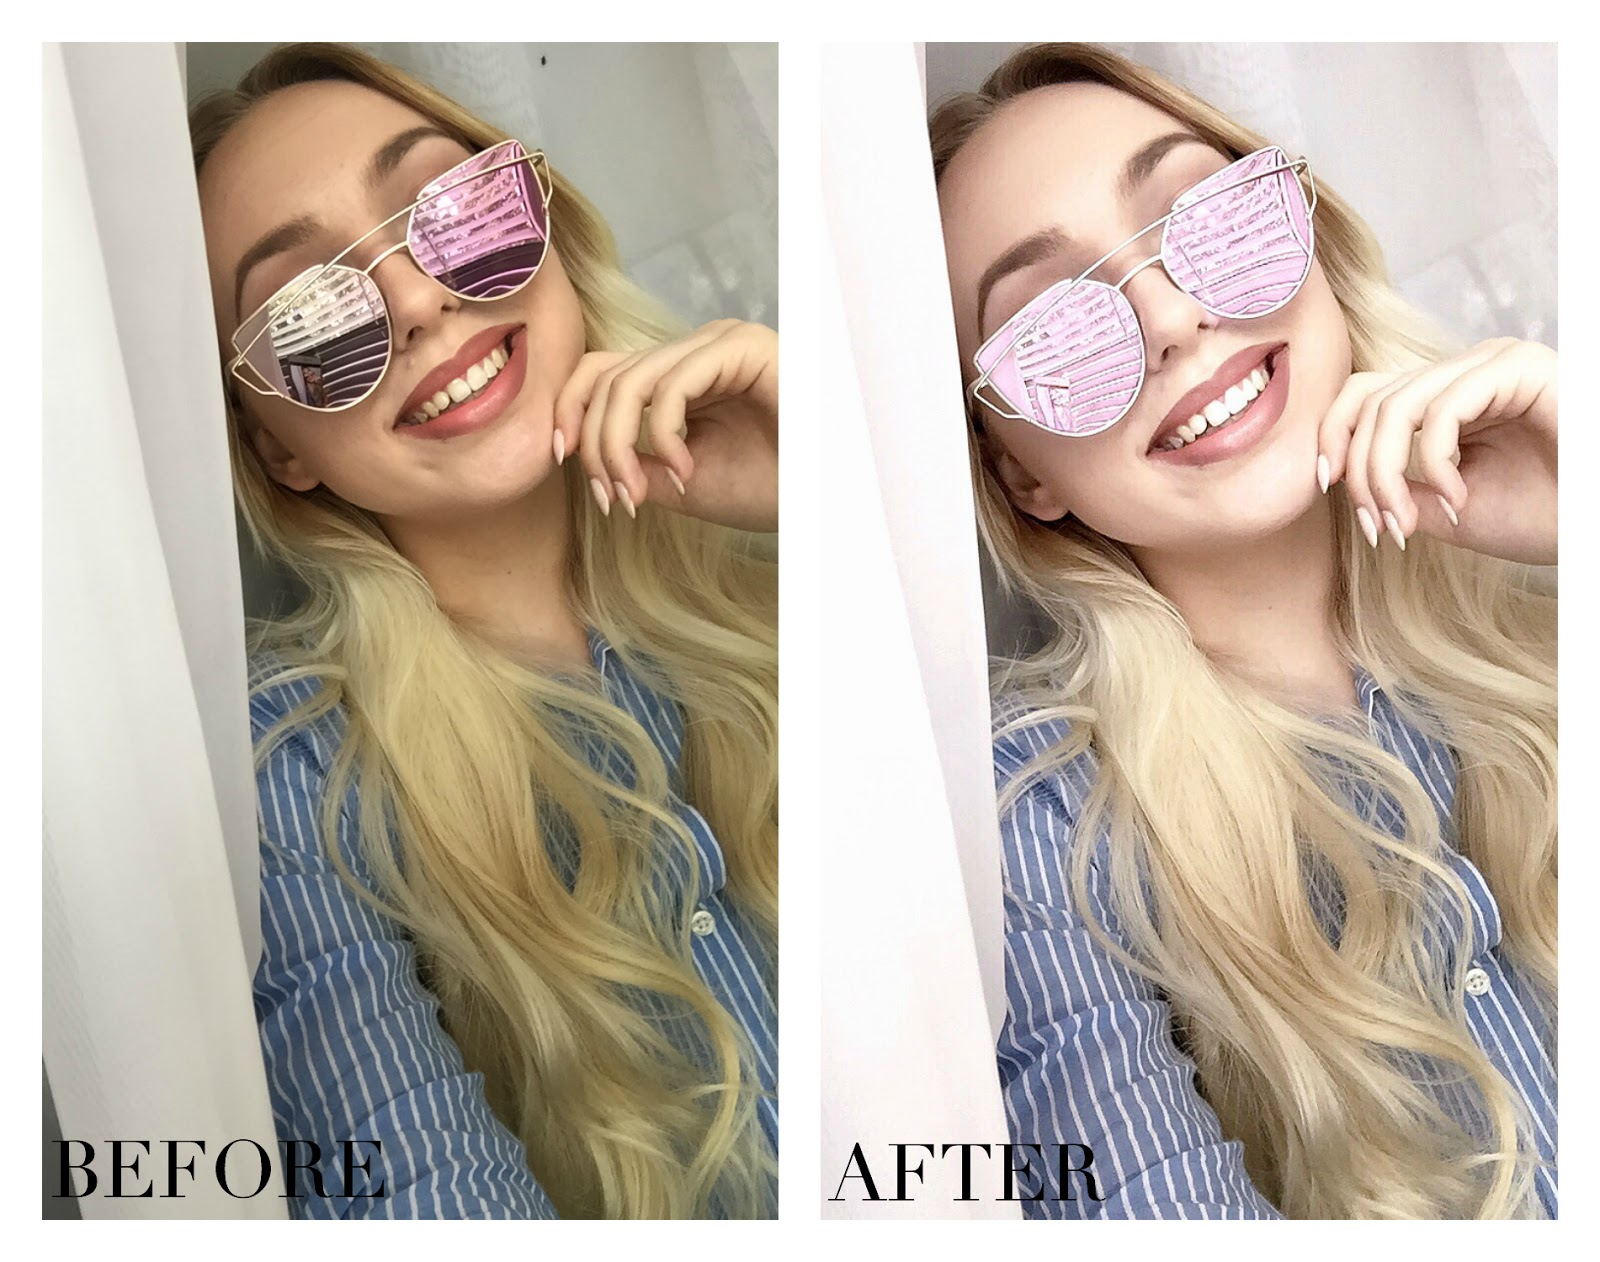 before and after selfie unedited